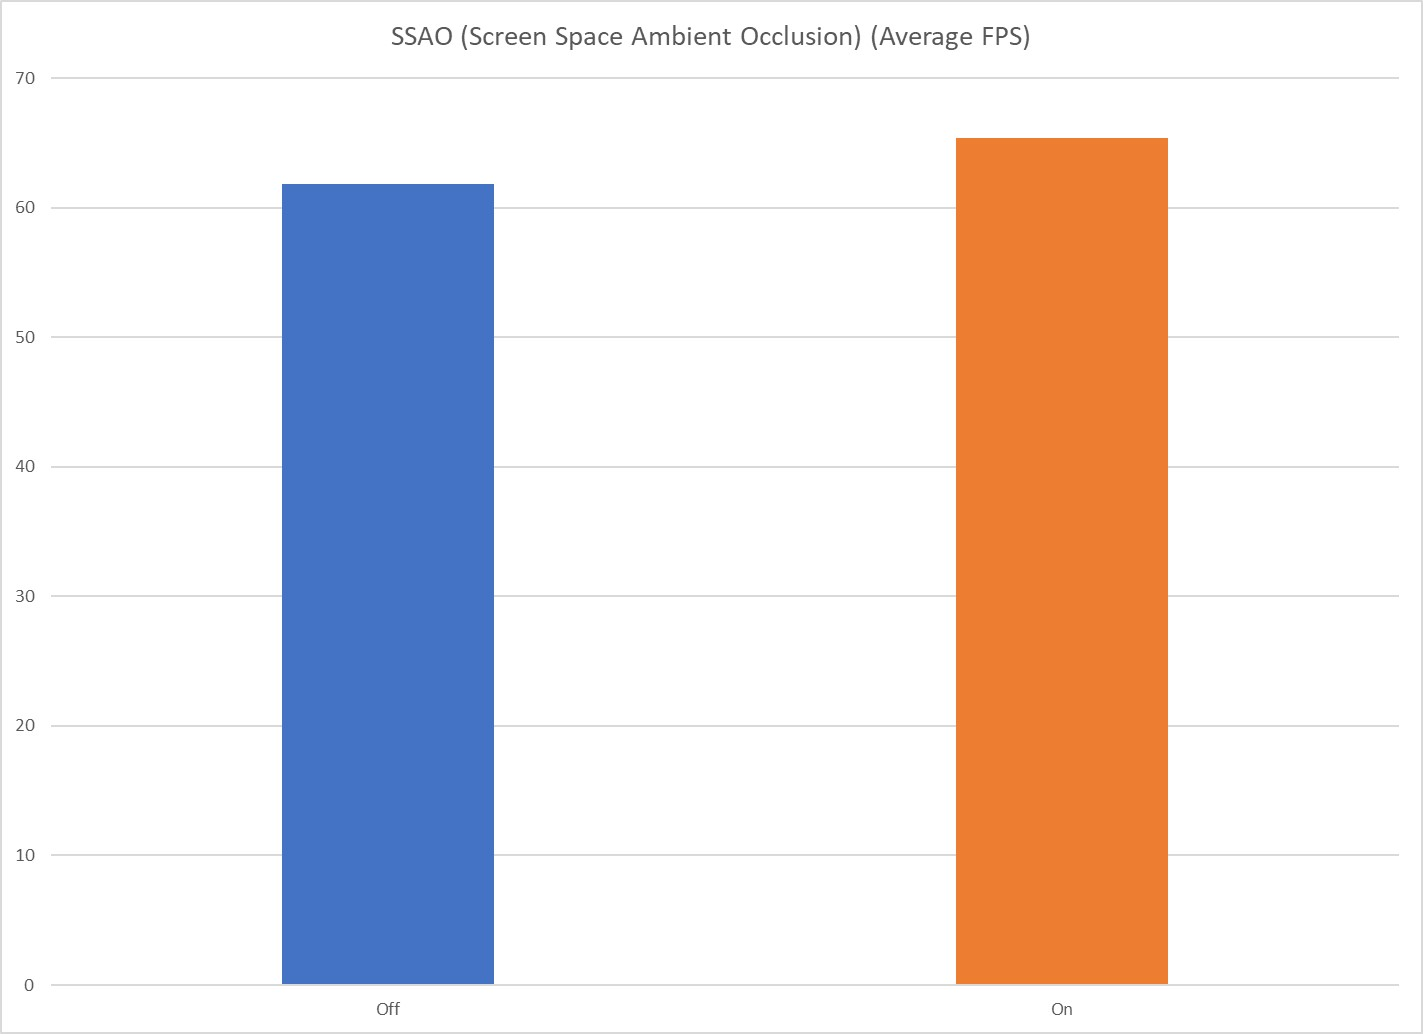 SSAO Average FPS Chart